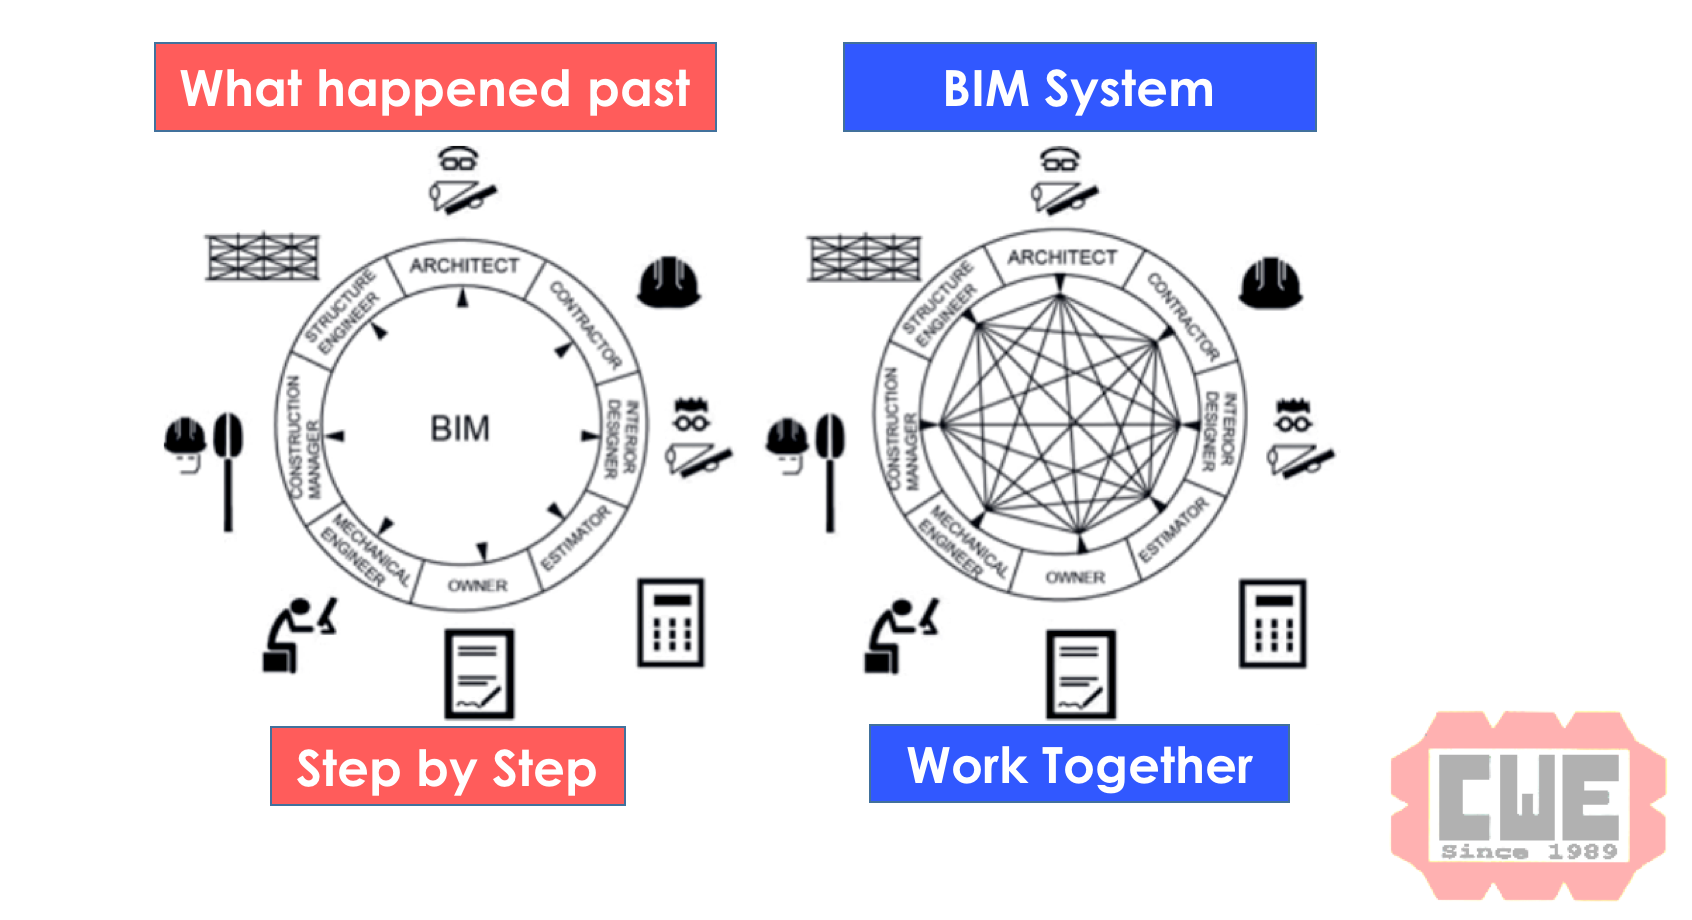 BIM work together